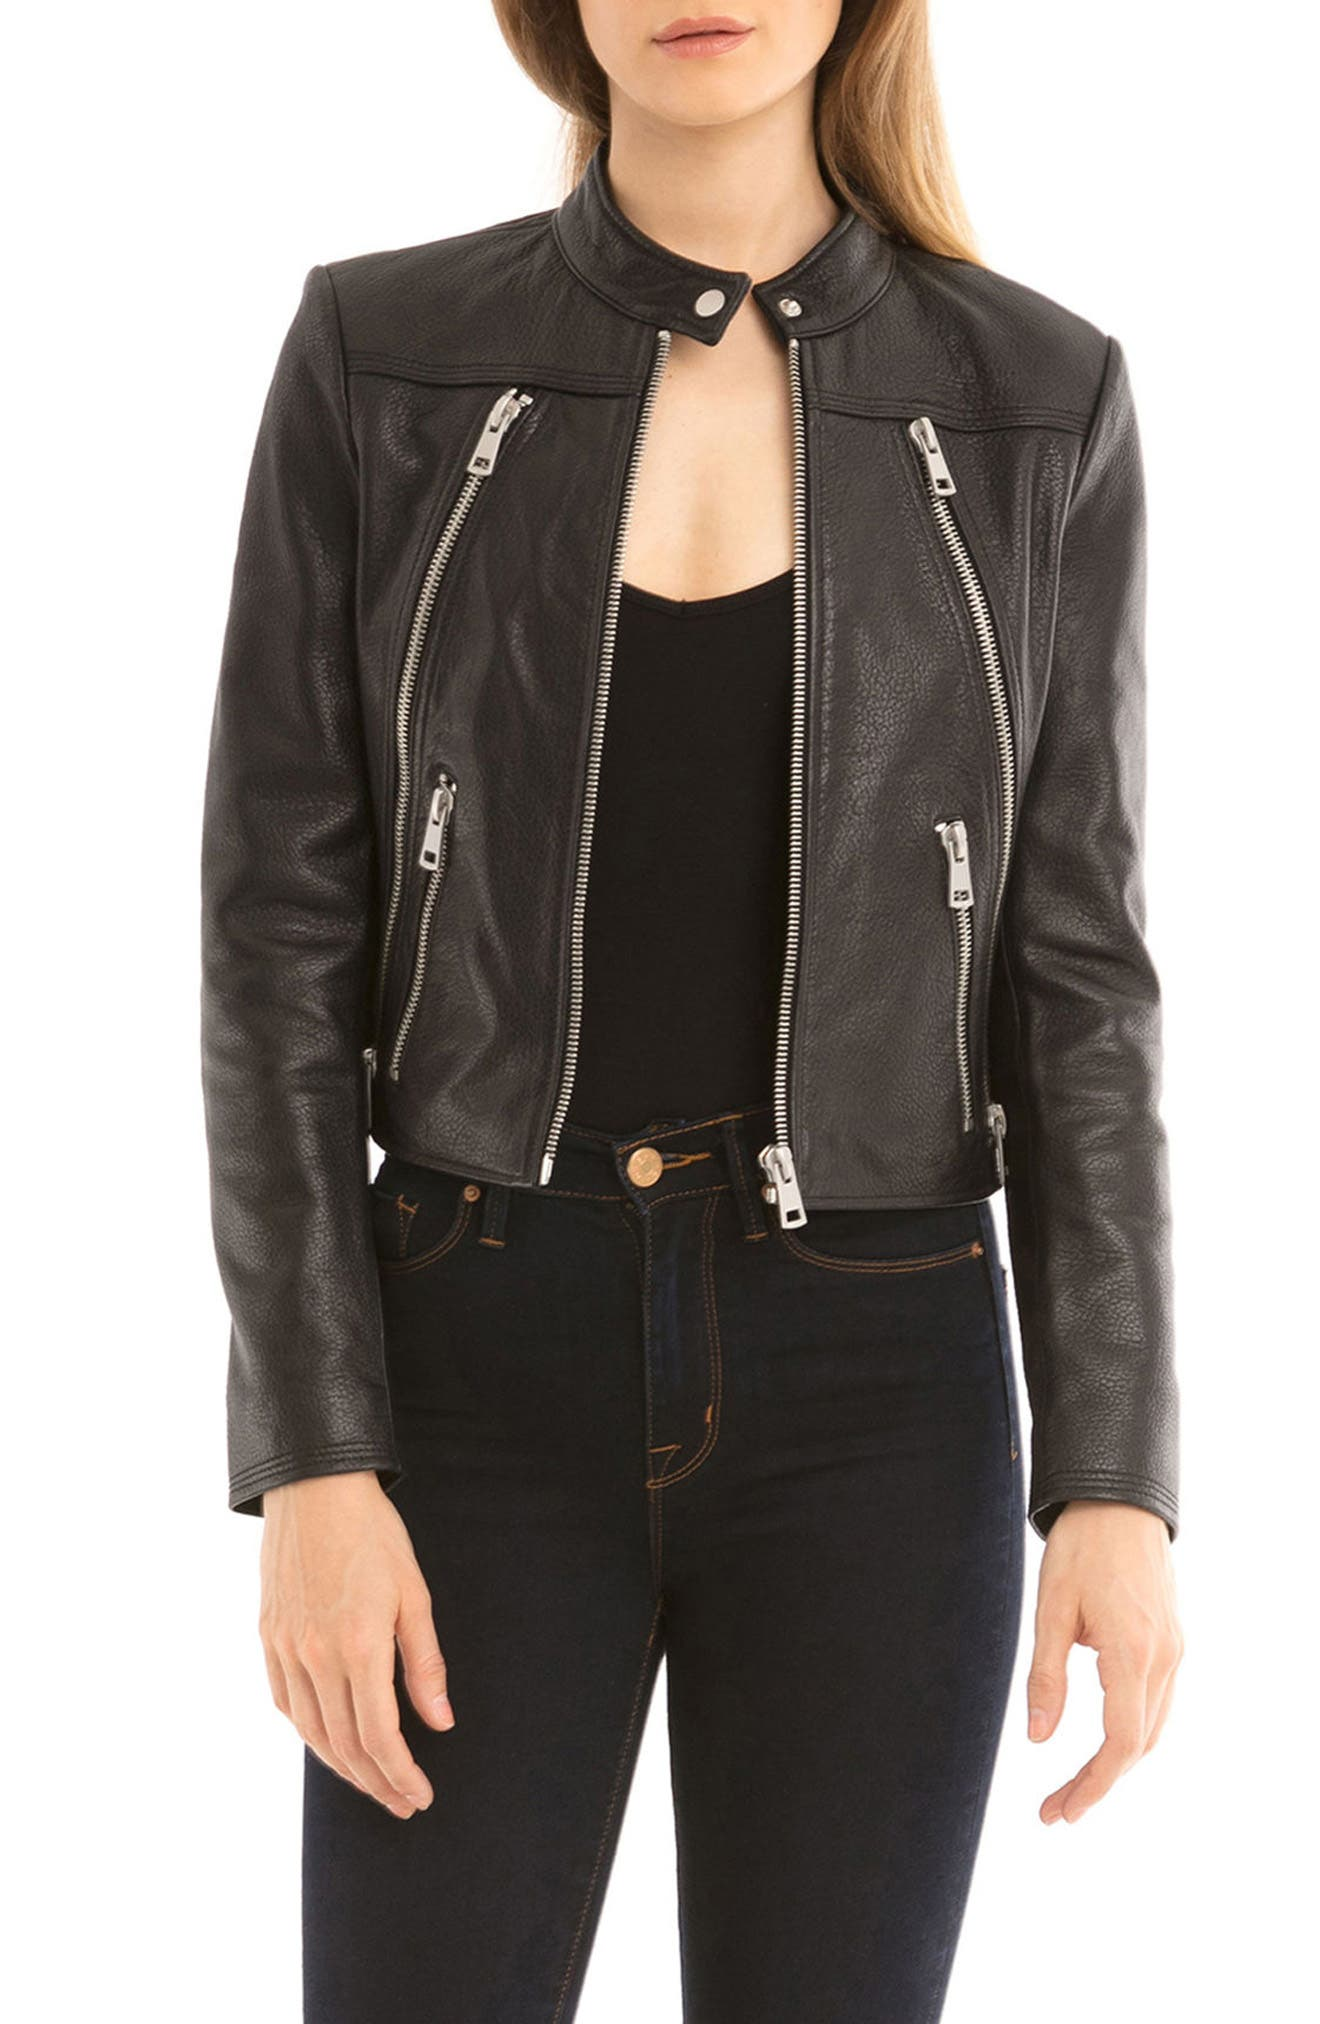 Bagatelle Textured Leather Jacket,                         Main,                         color, 001